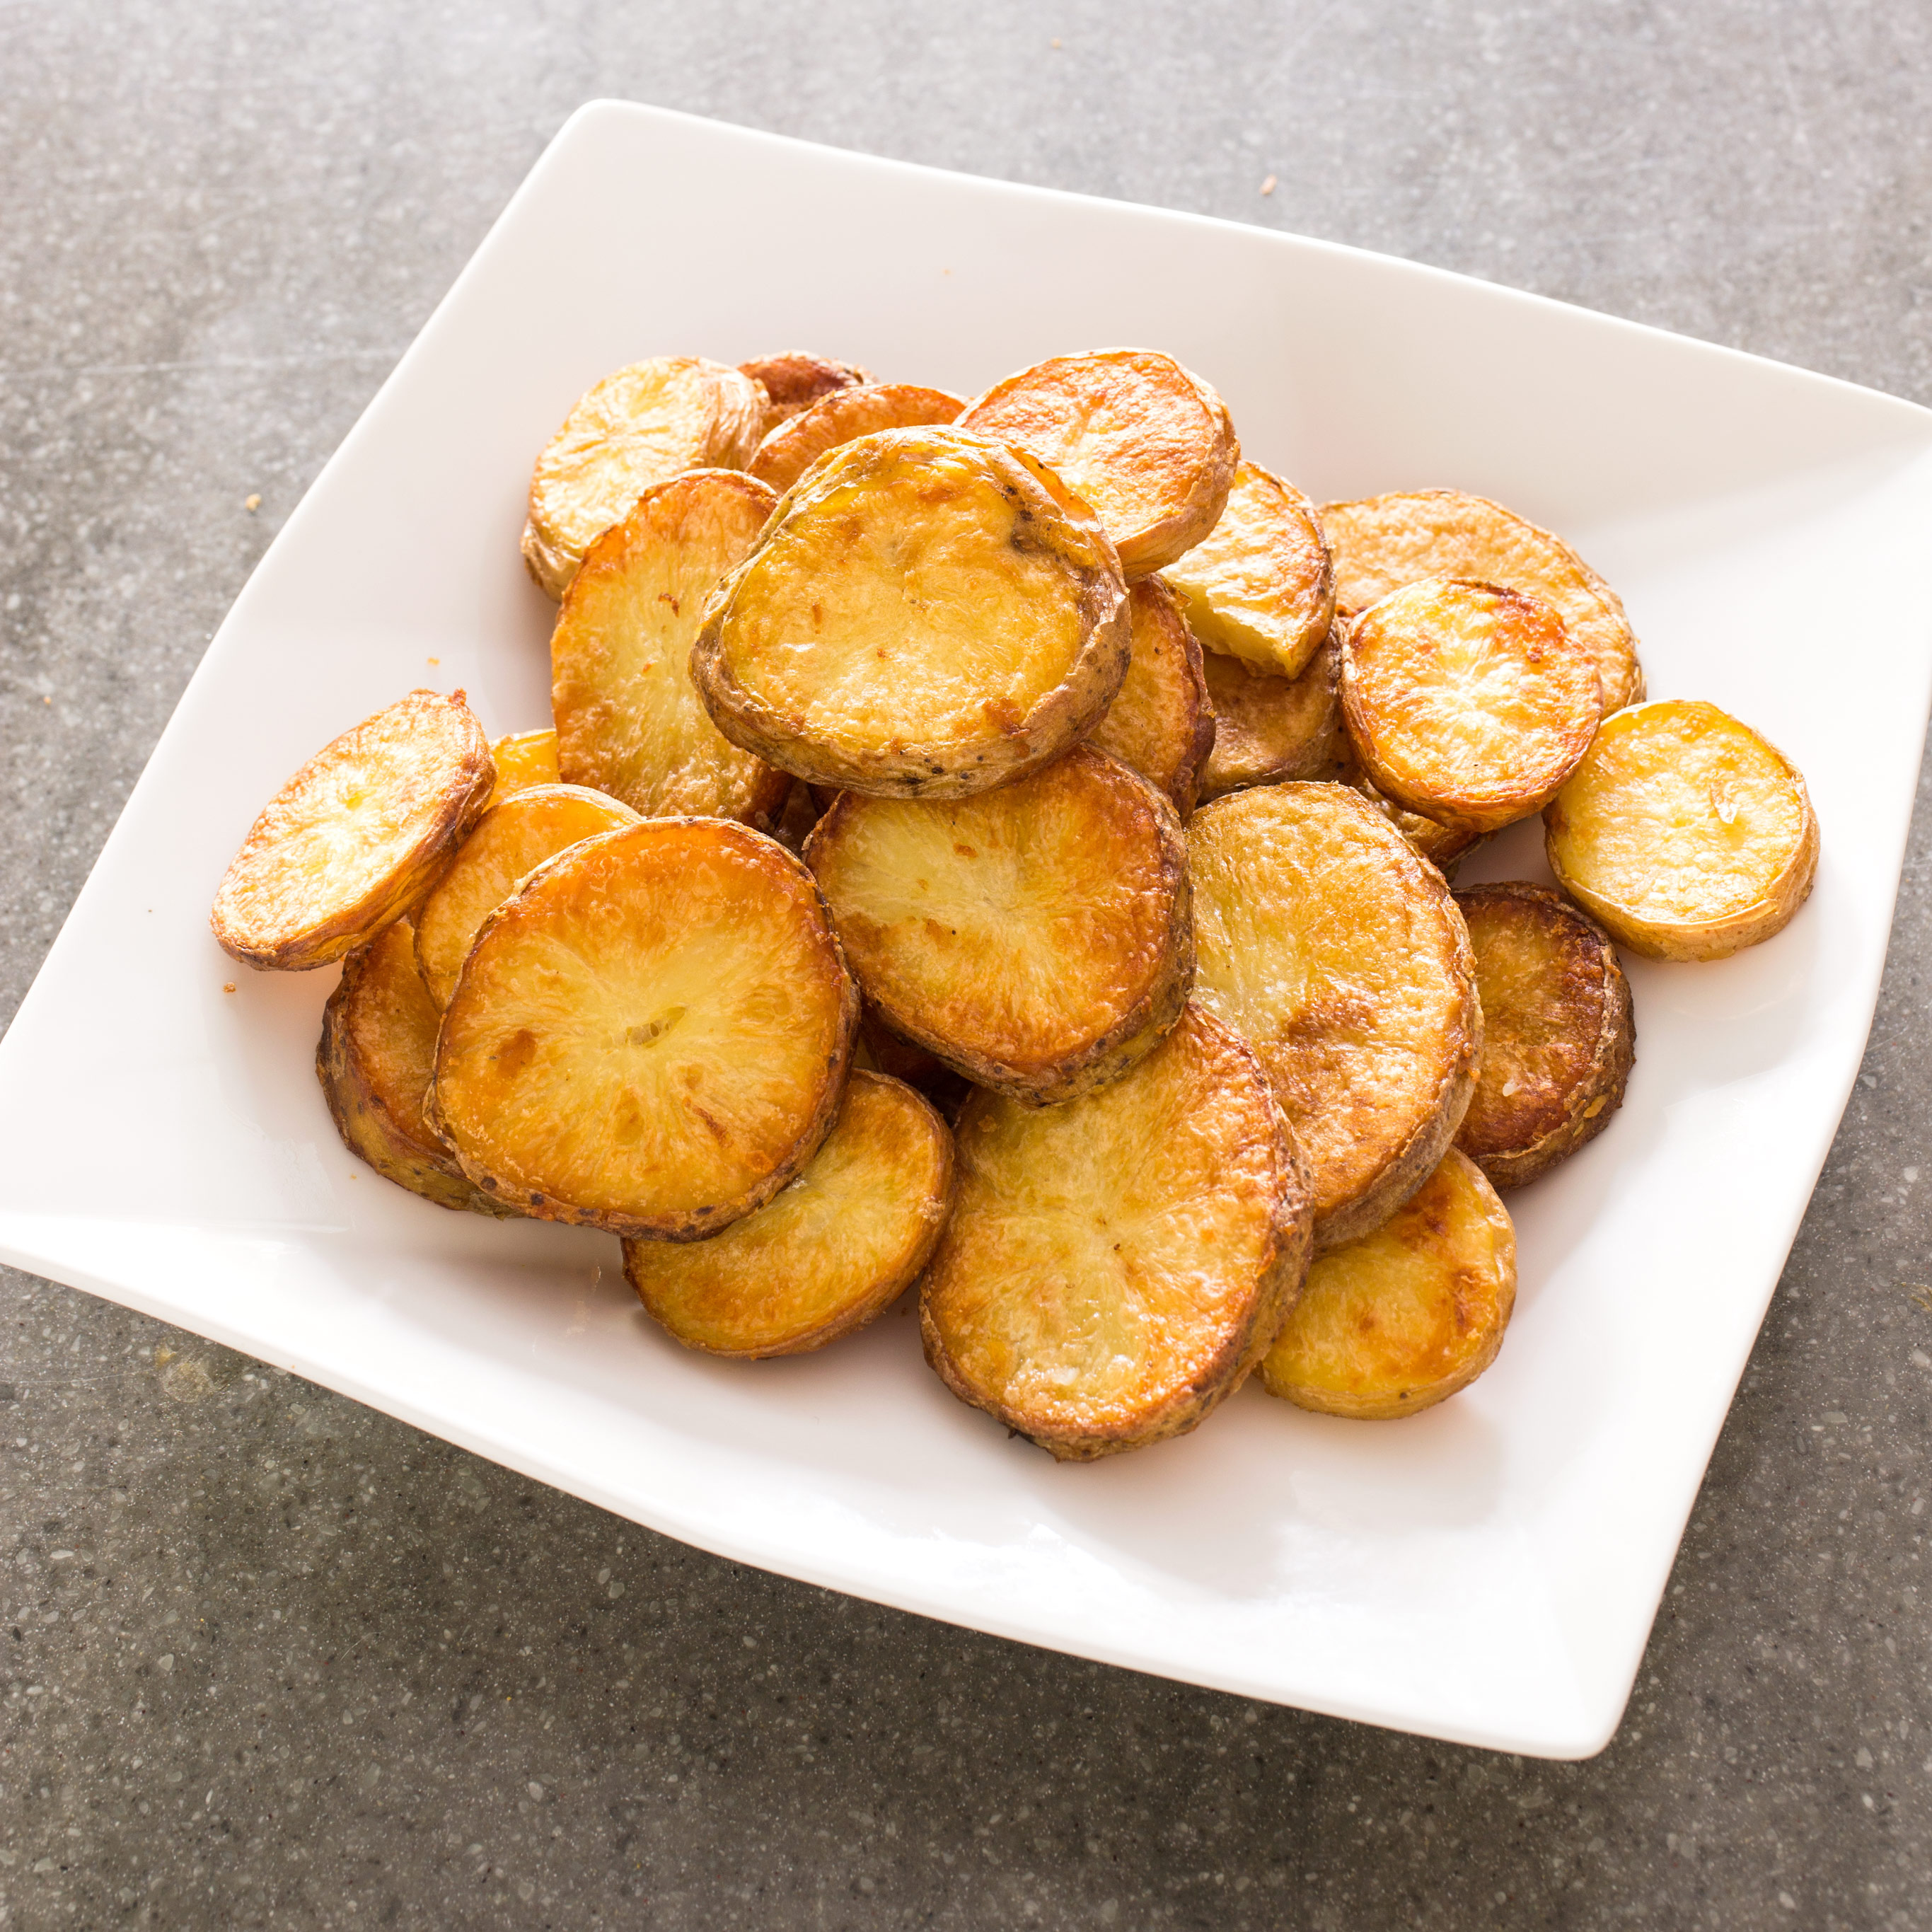 crisp roasted potatoes americas test kitchen - Americas Test Kitchen Baked Potato